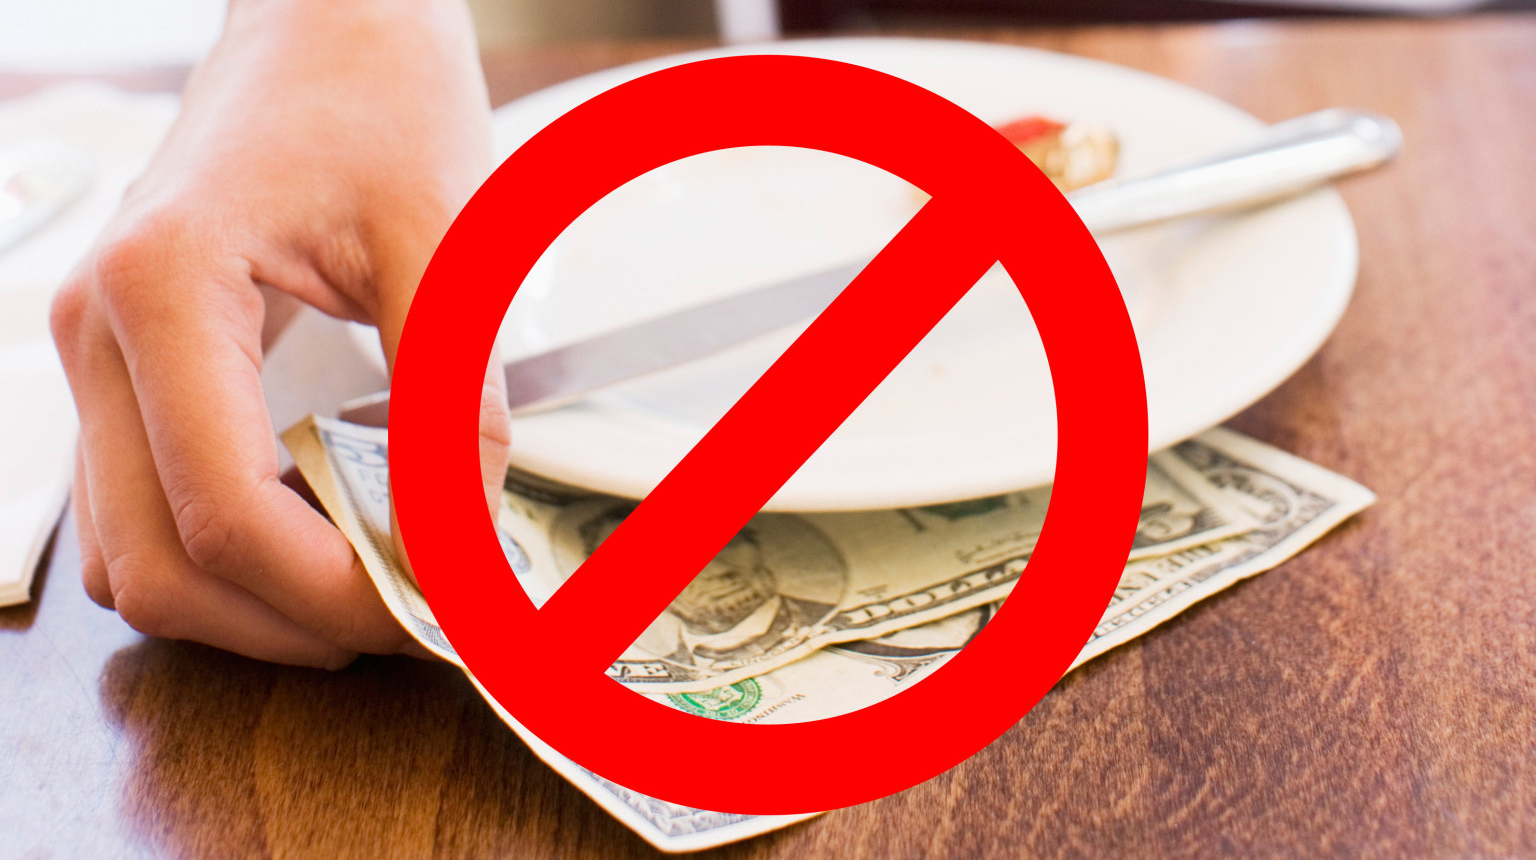 Karnataka Government directs hotels and restaurants to display  No service charge  boards